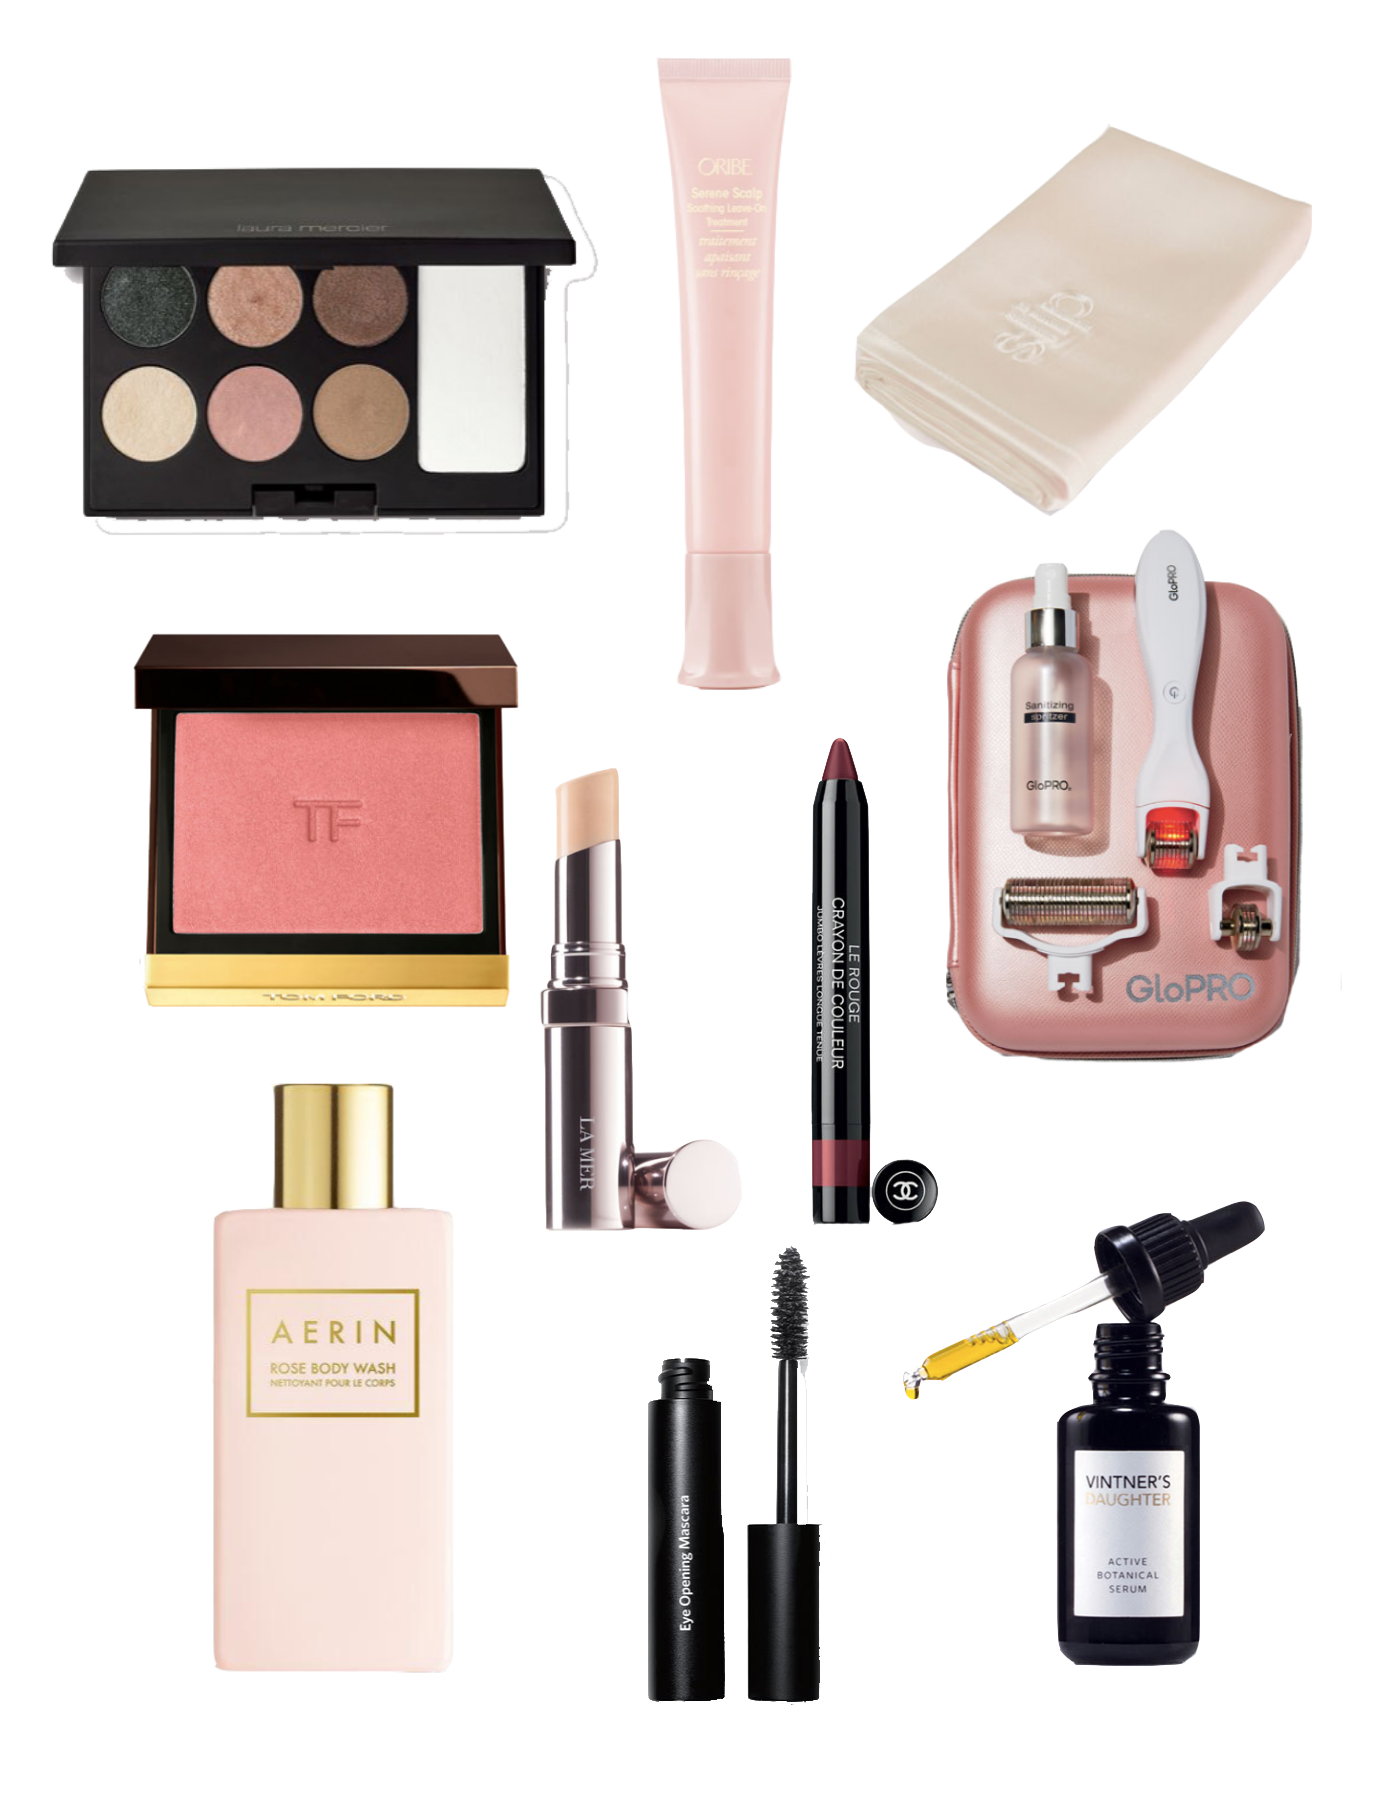 Neiman Marcus Beauty Event by popular Michigan beauty blog, The HSS Feed: collage image of Tom Ford cheek color, Vintner's Daughter serum, Oribe Serene scalp treatment, La Mer the concealer, Laura Mercier eye clay pallet, Bobbi Brown mascara, and Chanel rouge crayon.